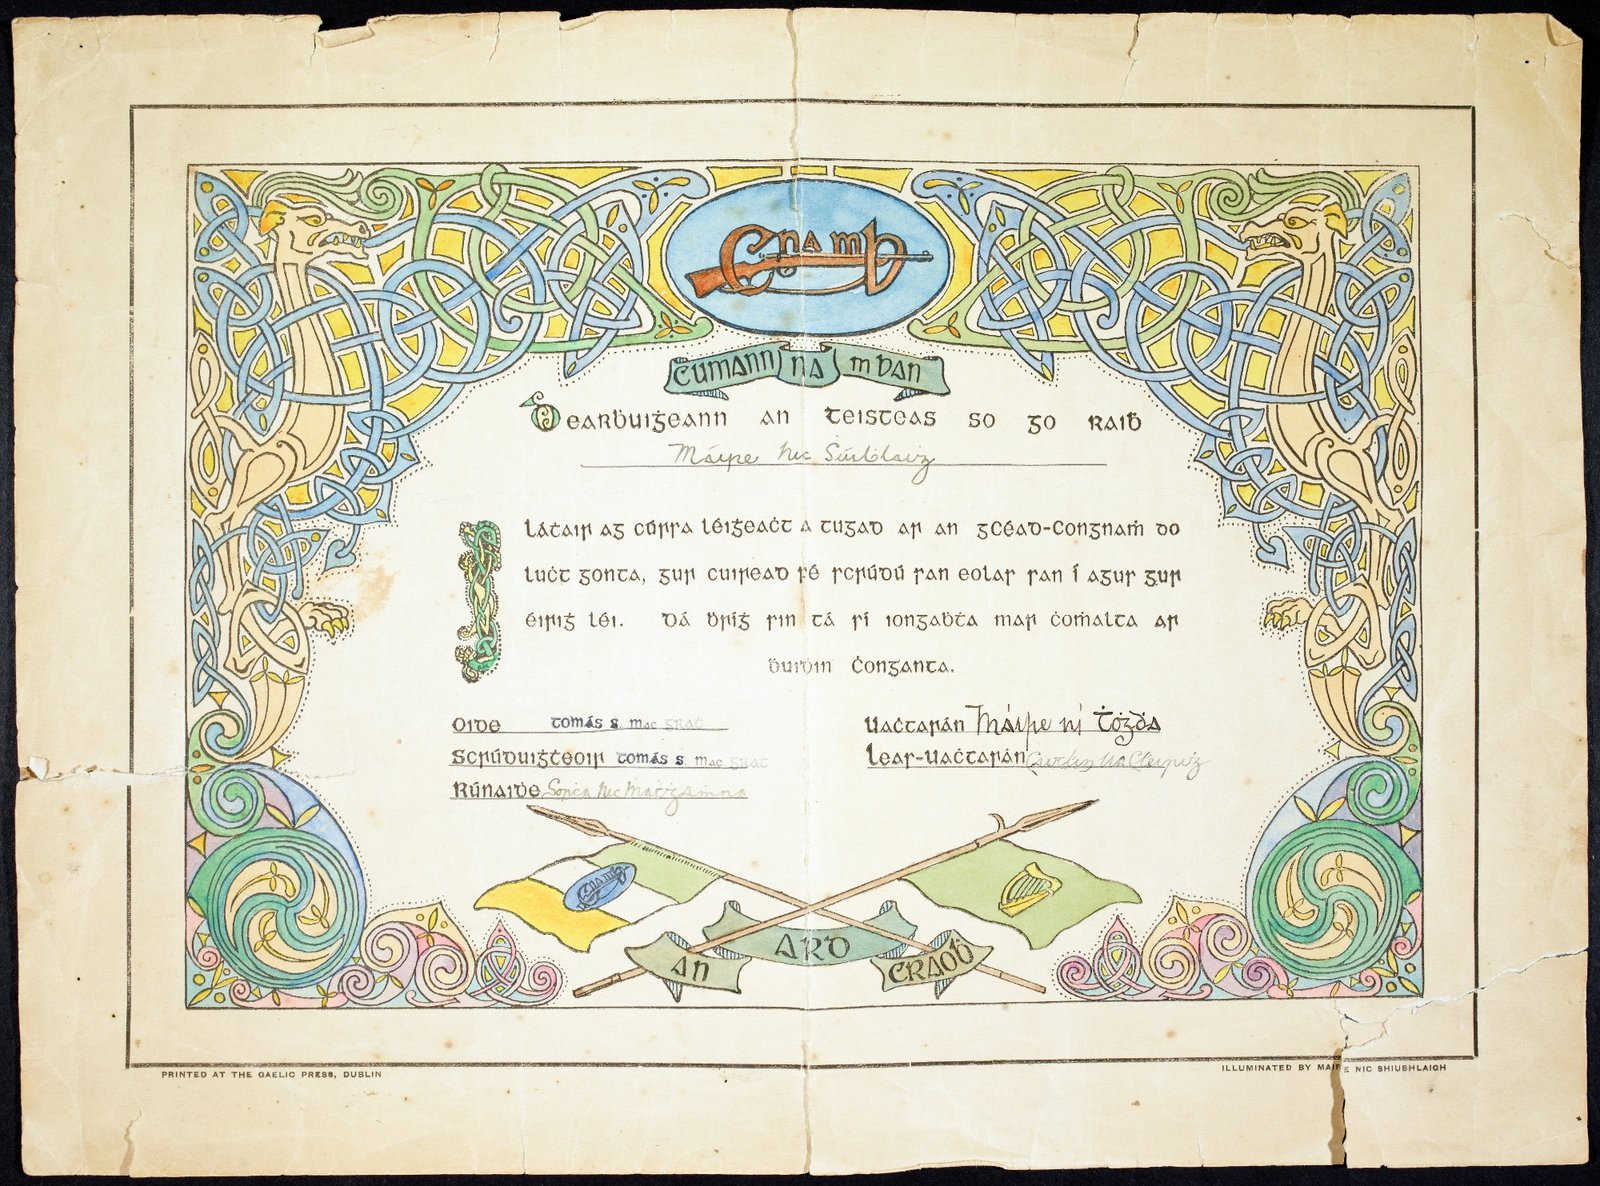 Image - A first aid certificate awarded to Cumann na mBan member and AbbPhoto: © National Library of Ireland